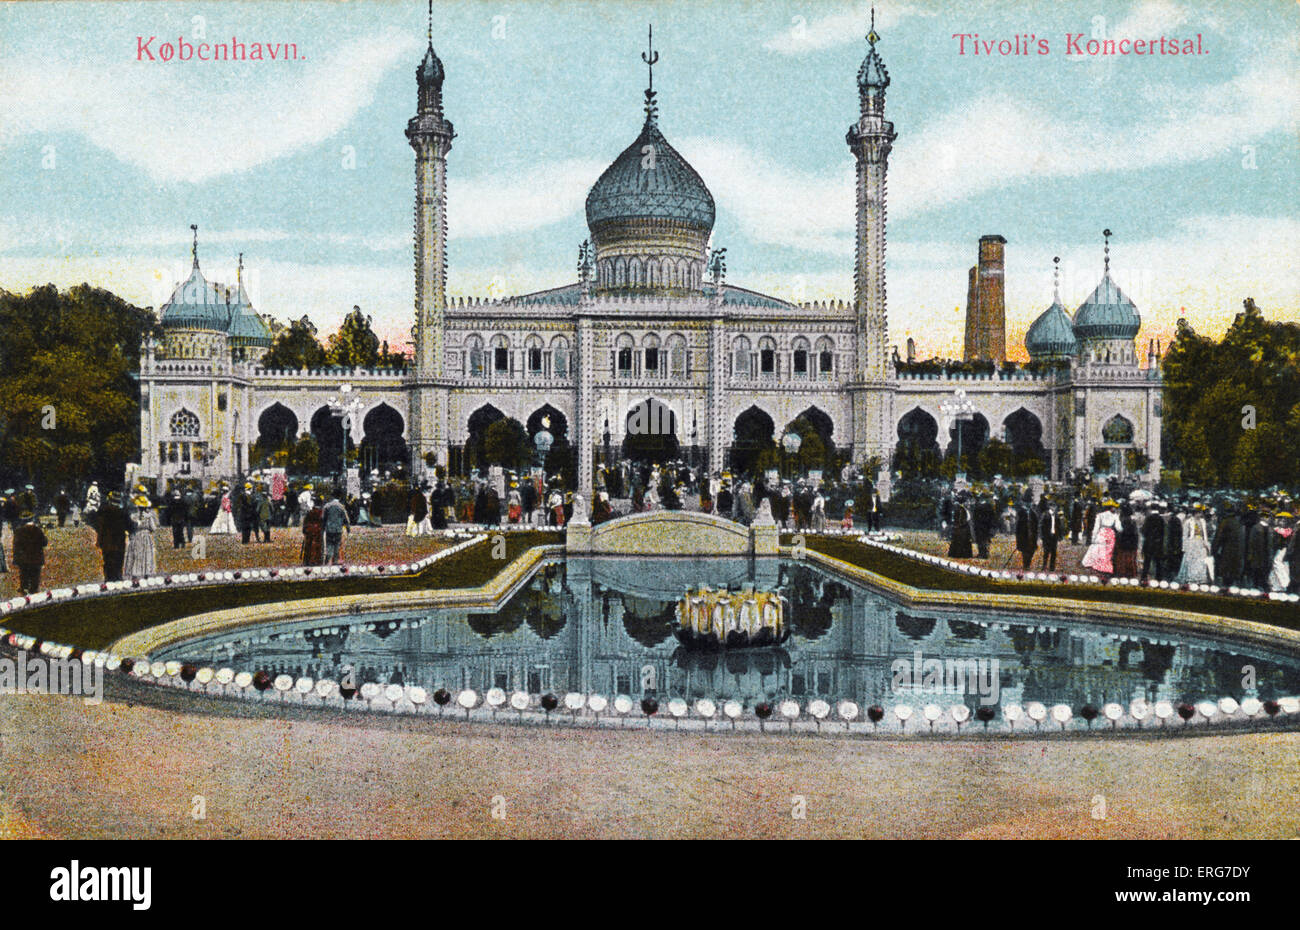 Copenhagen. Tivoli  Gardens Early 20th century postcard. Denmark - Stock Image